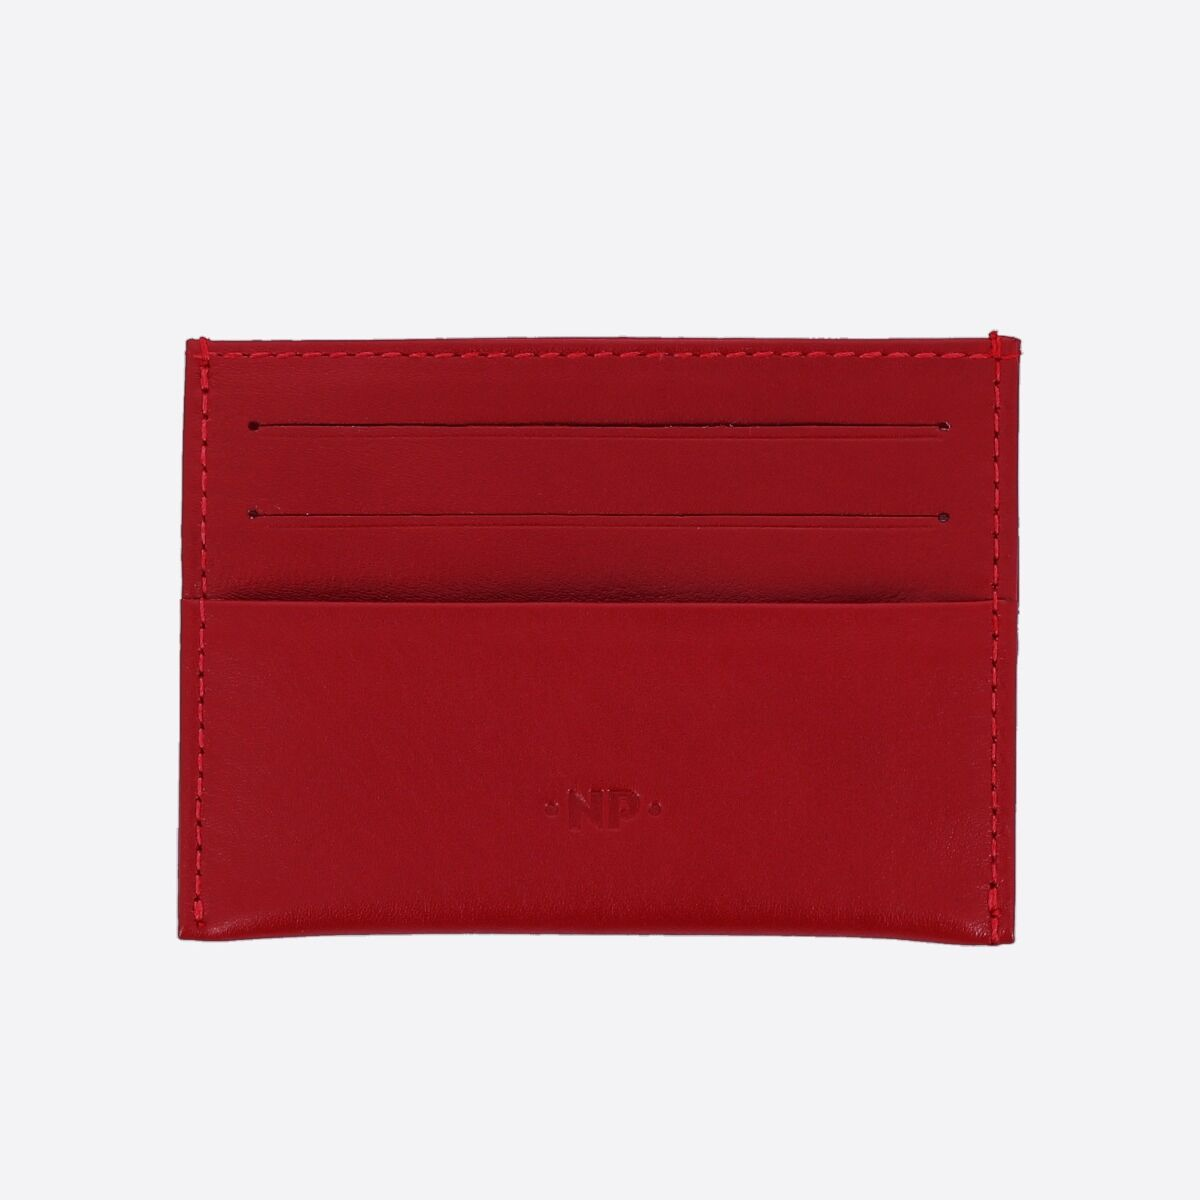 Minimalist leather credit card wallet - Red